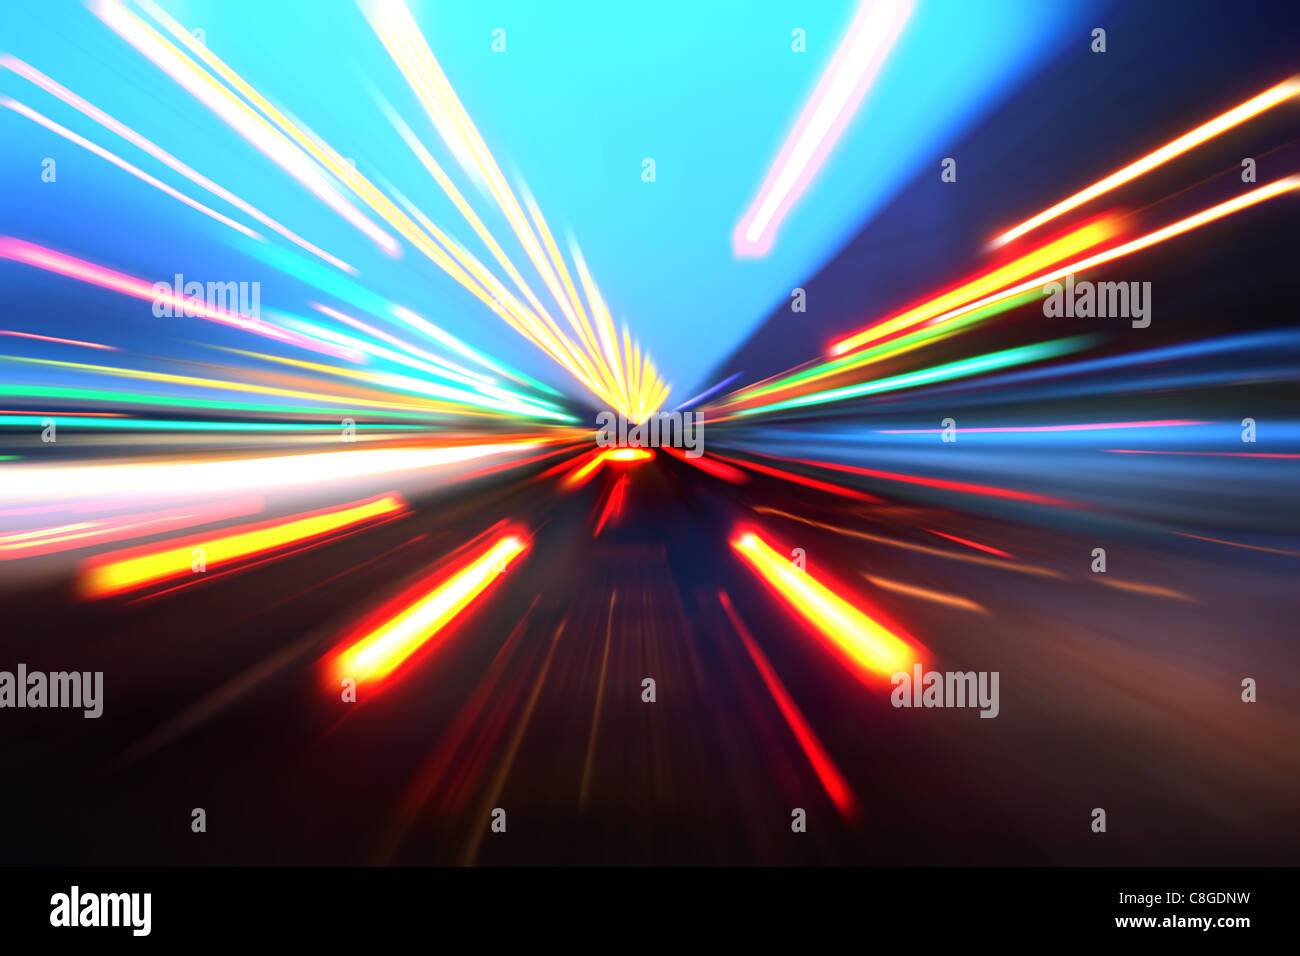 acceleration speed on the road - Stock Image